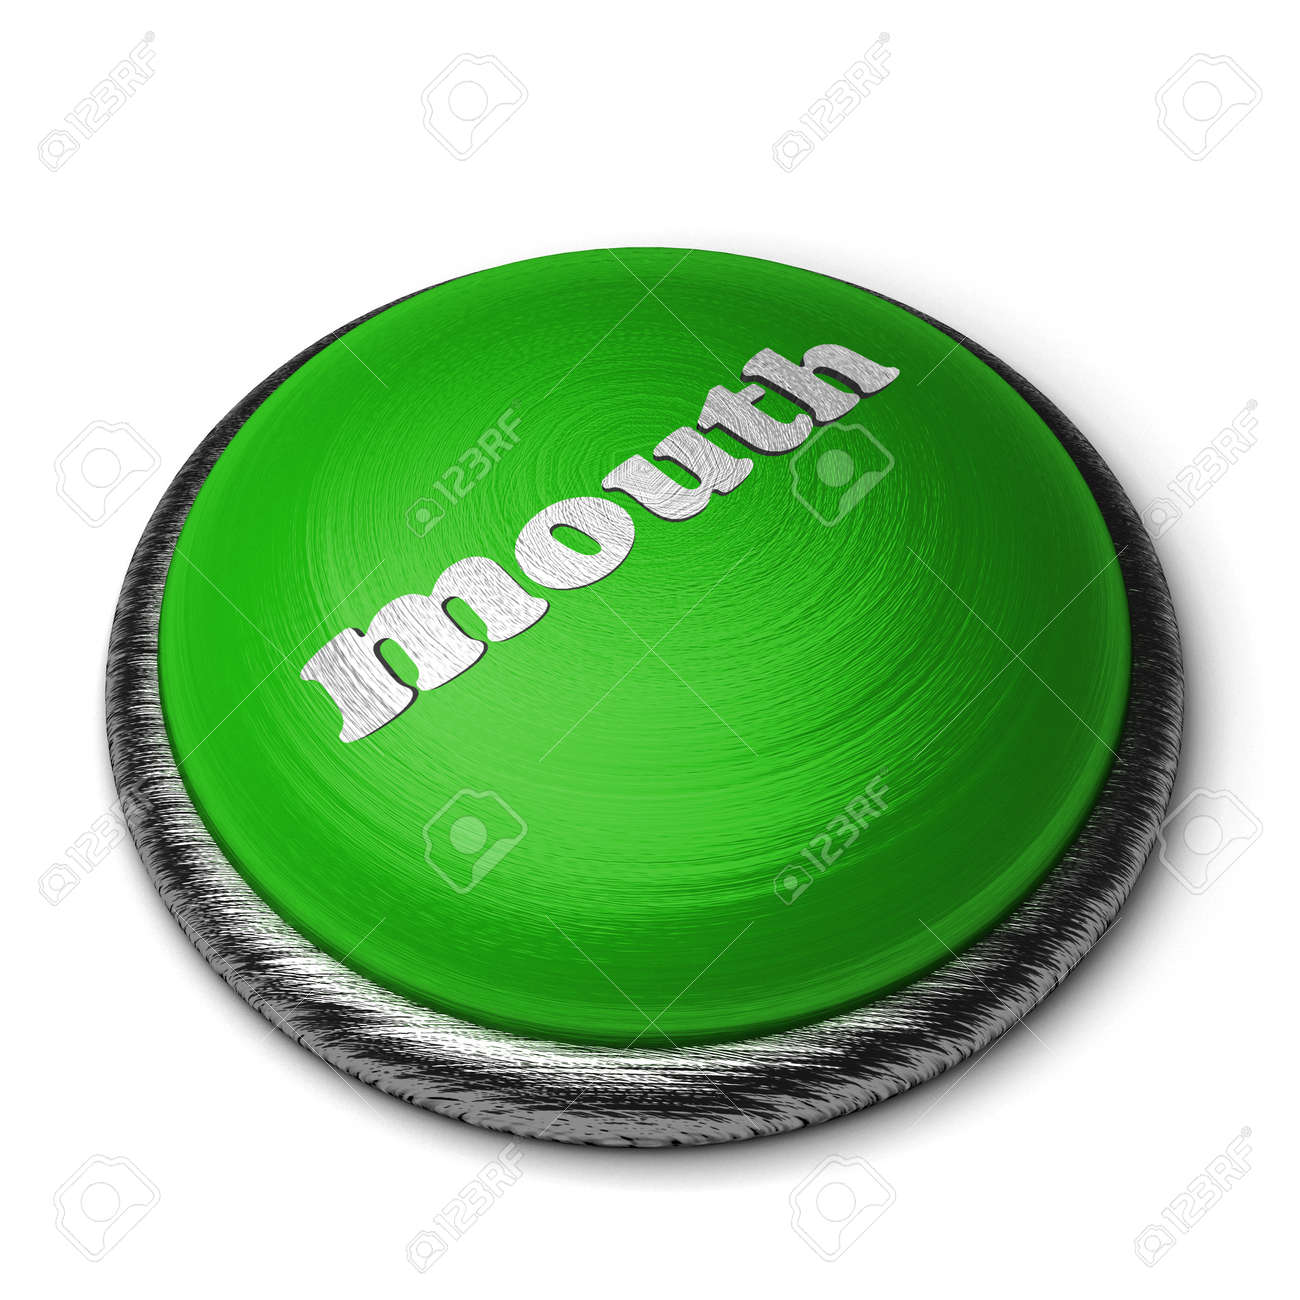 Word on the button Stock Photo - 11856045